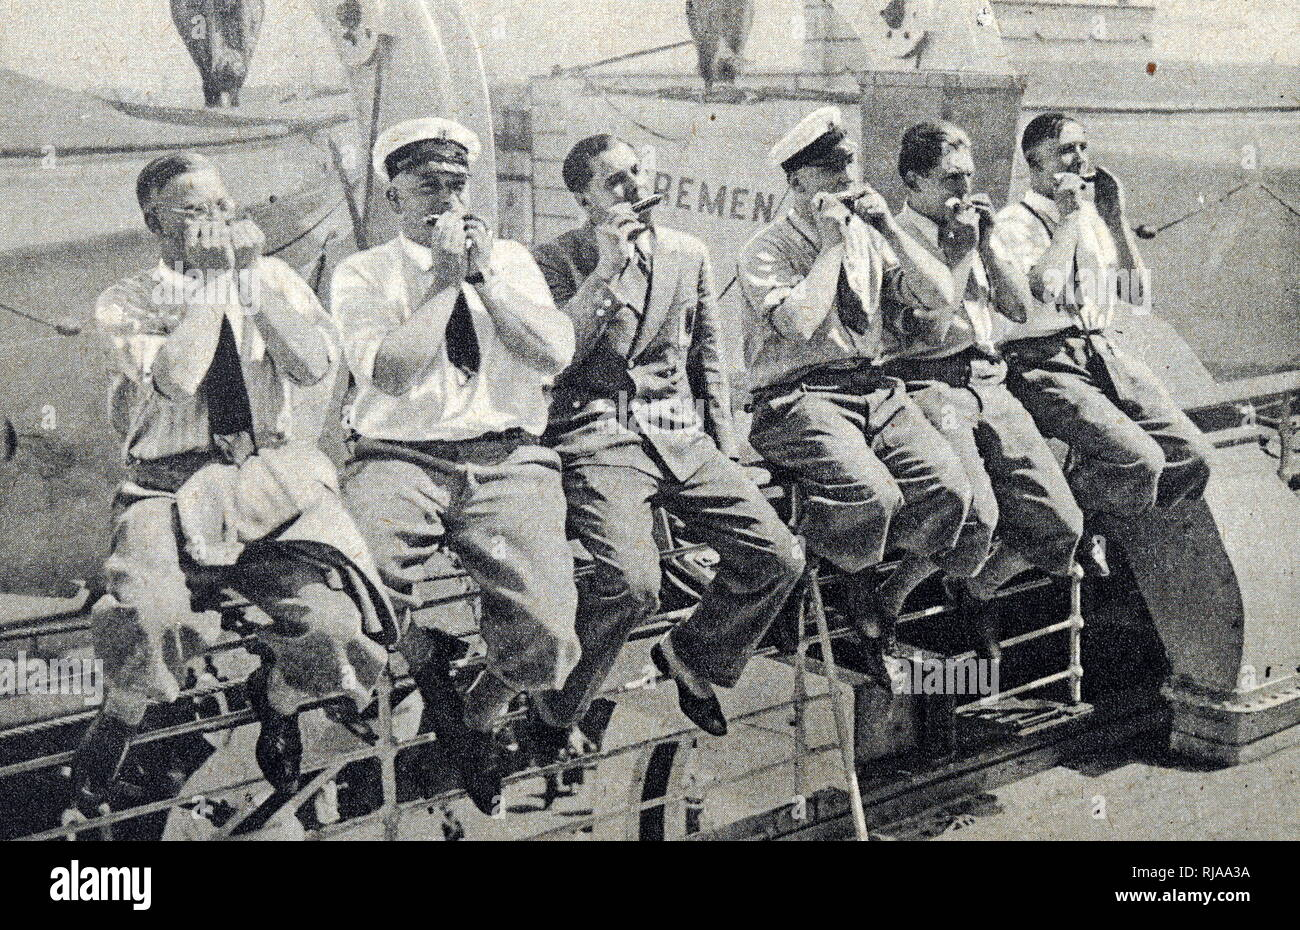 The German water polo team for the 1932 Los Angeles Olympics sat playing music together. Dated 20th Century - Stock Image